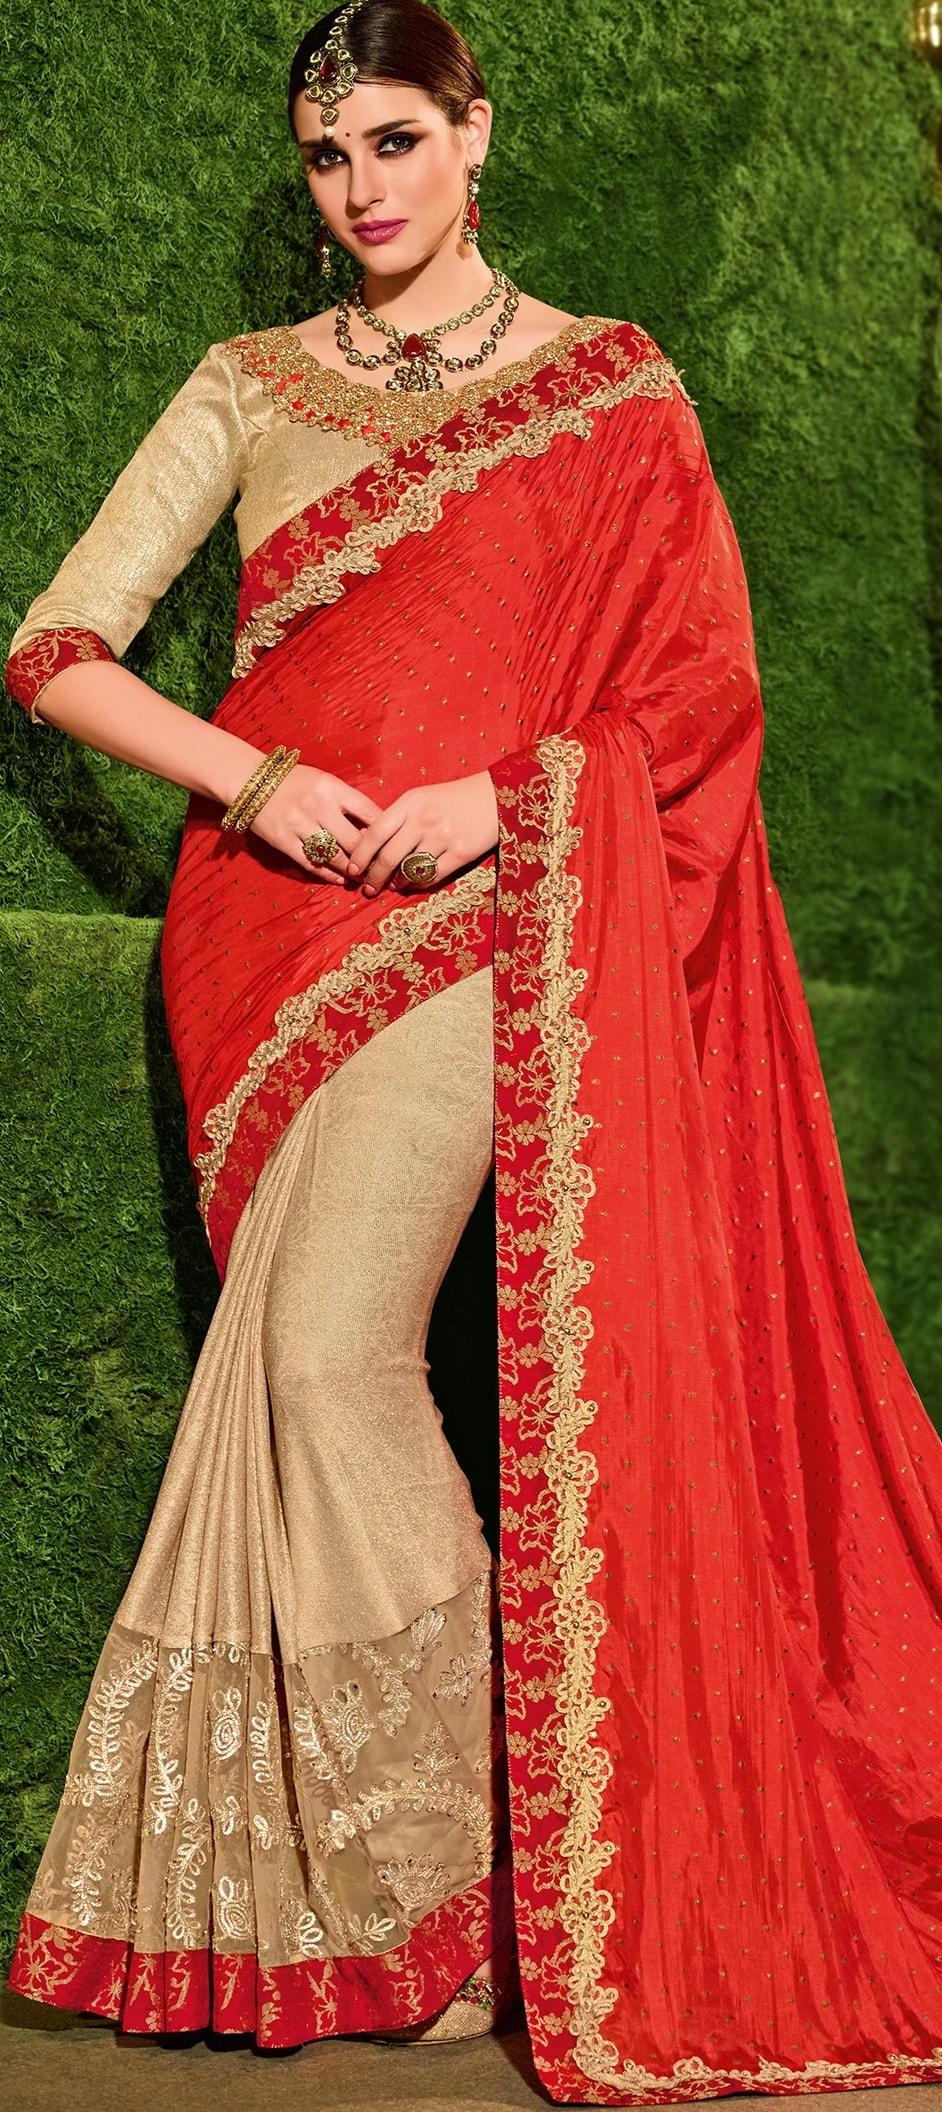 767934: Beige and Brown, Orange color family Embroidered Sarees ...